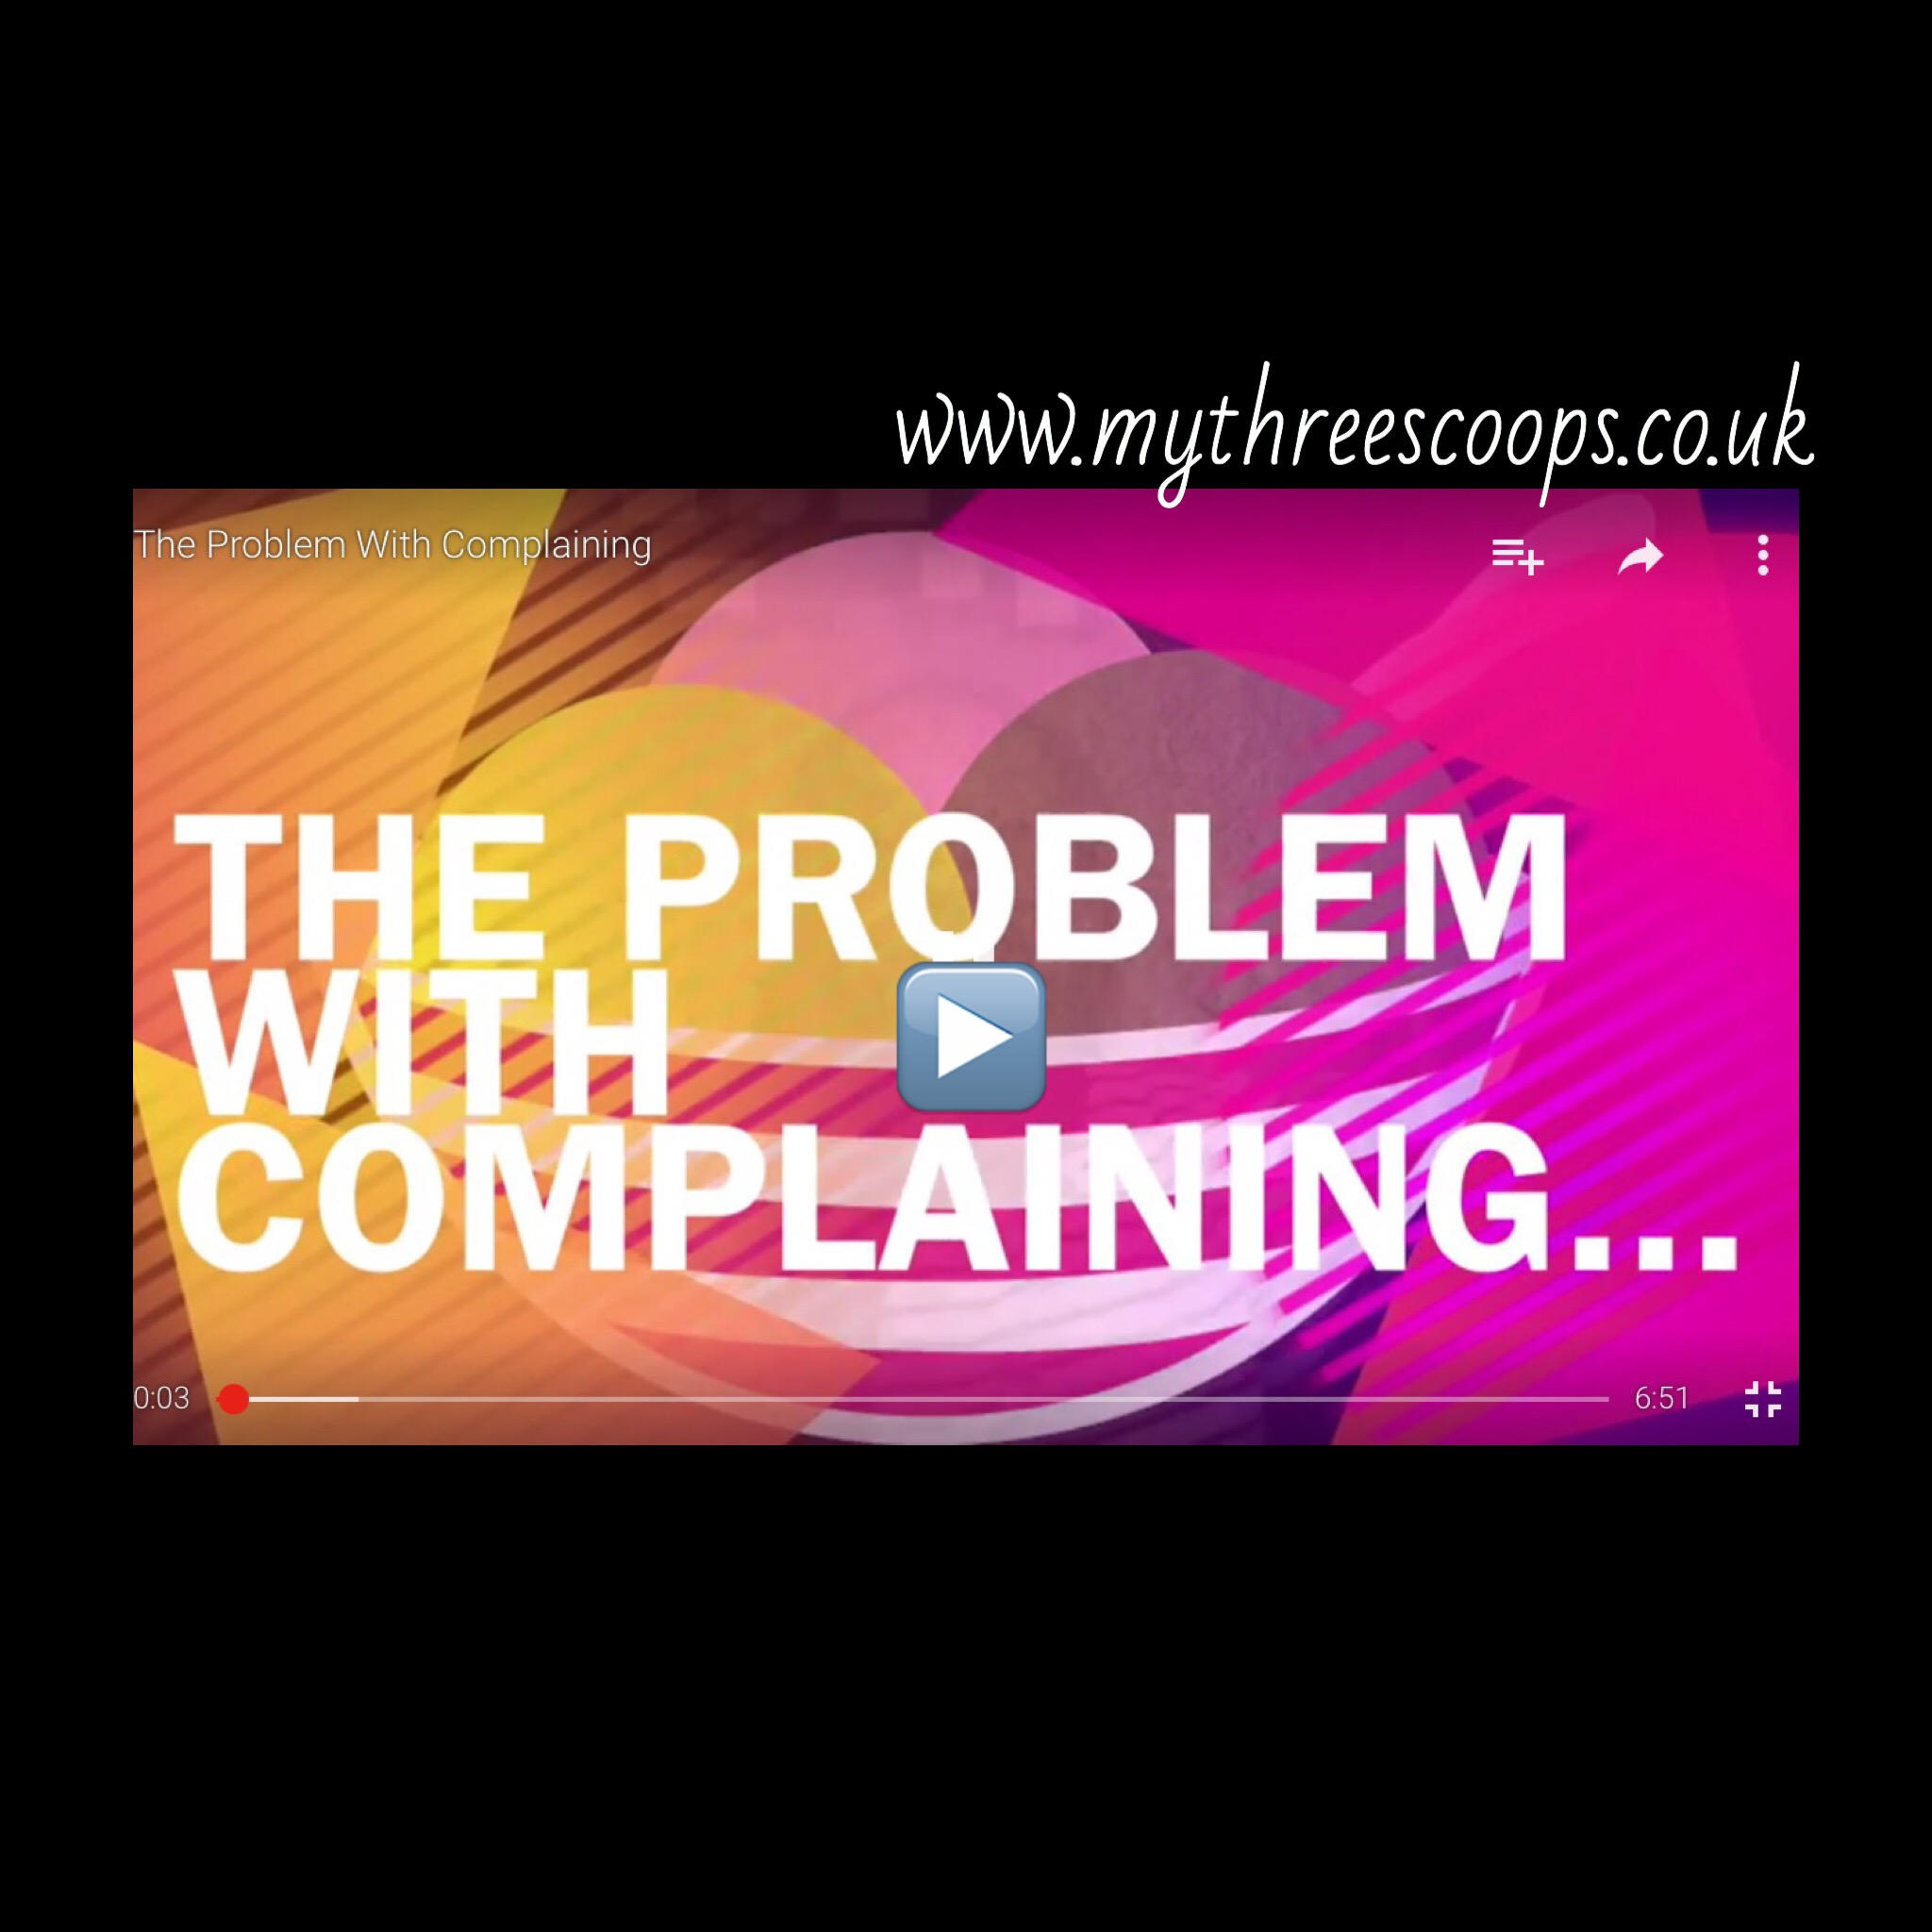 The Problem With Complaining [VLog]